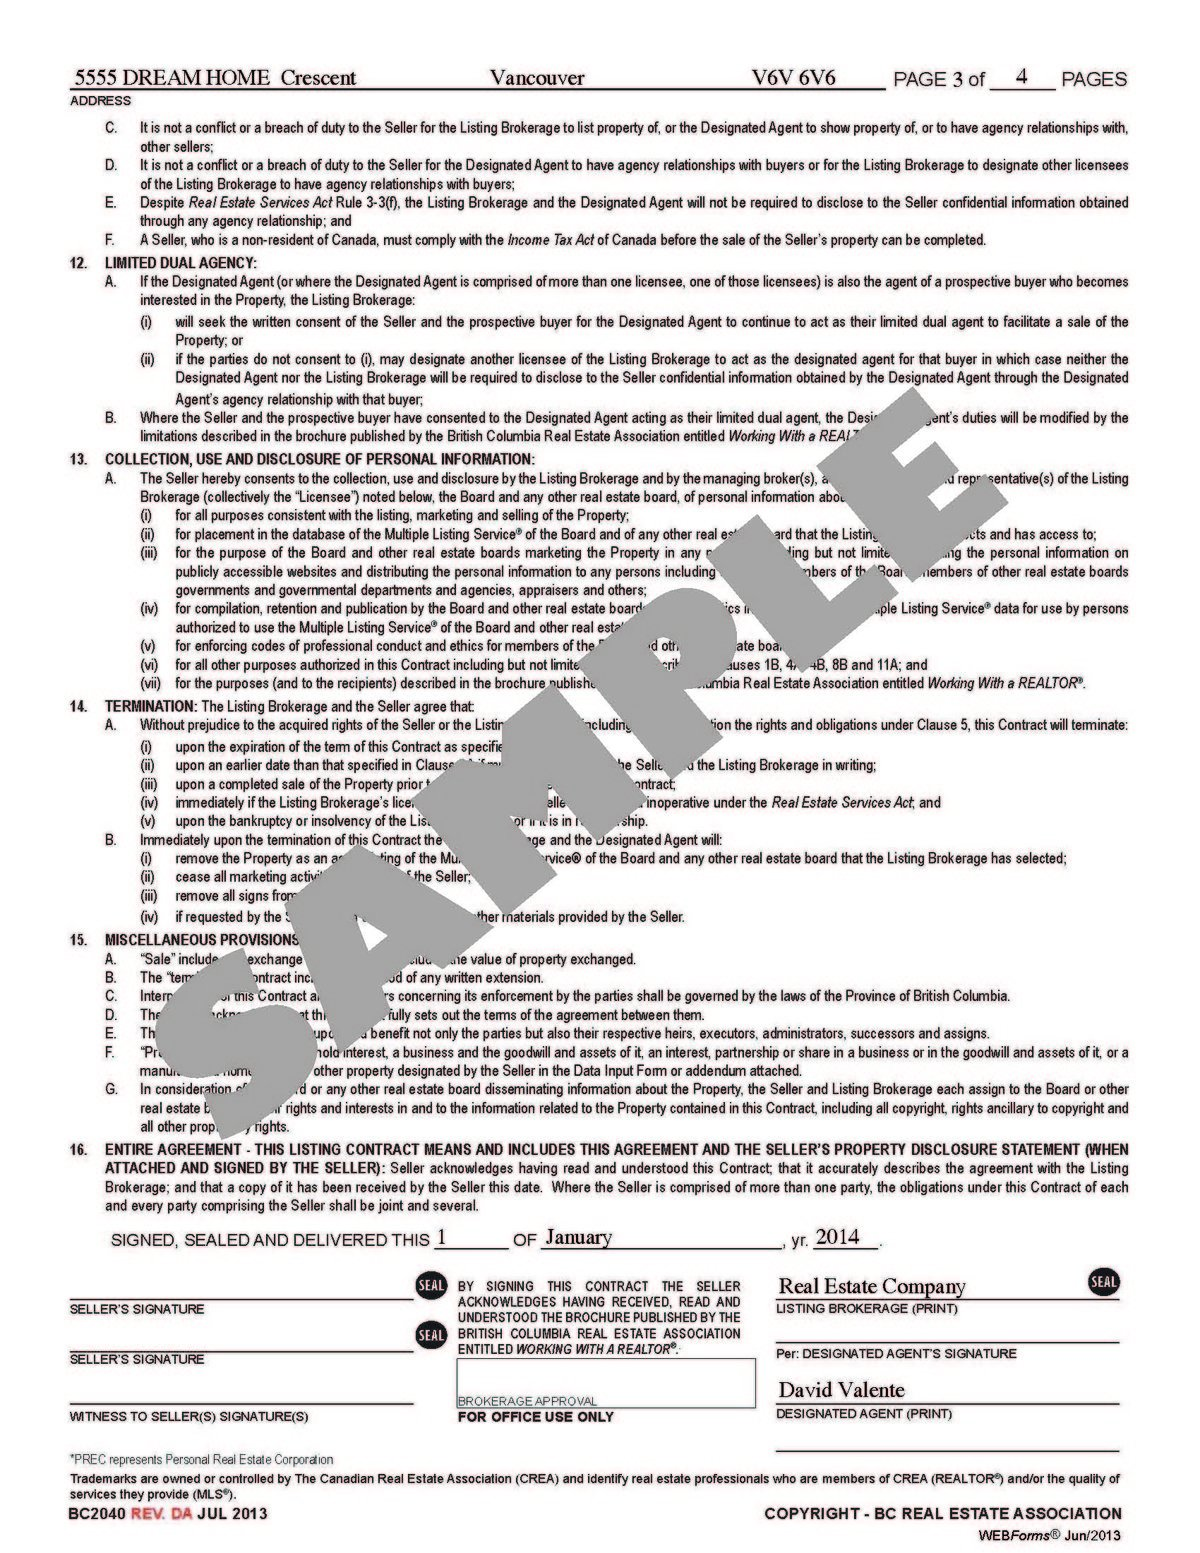 MLS-multiple_listing_contract SAMPLE_Page_3.jpg